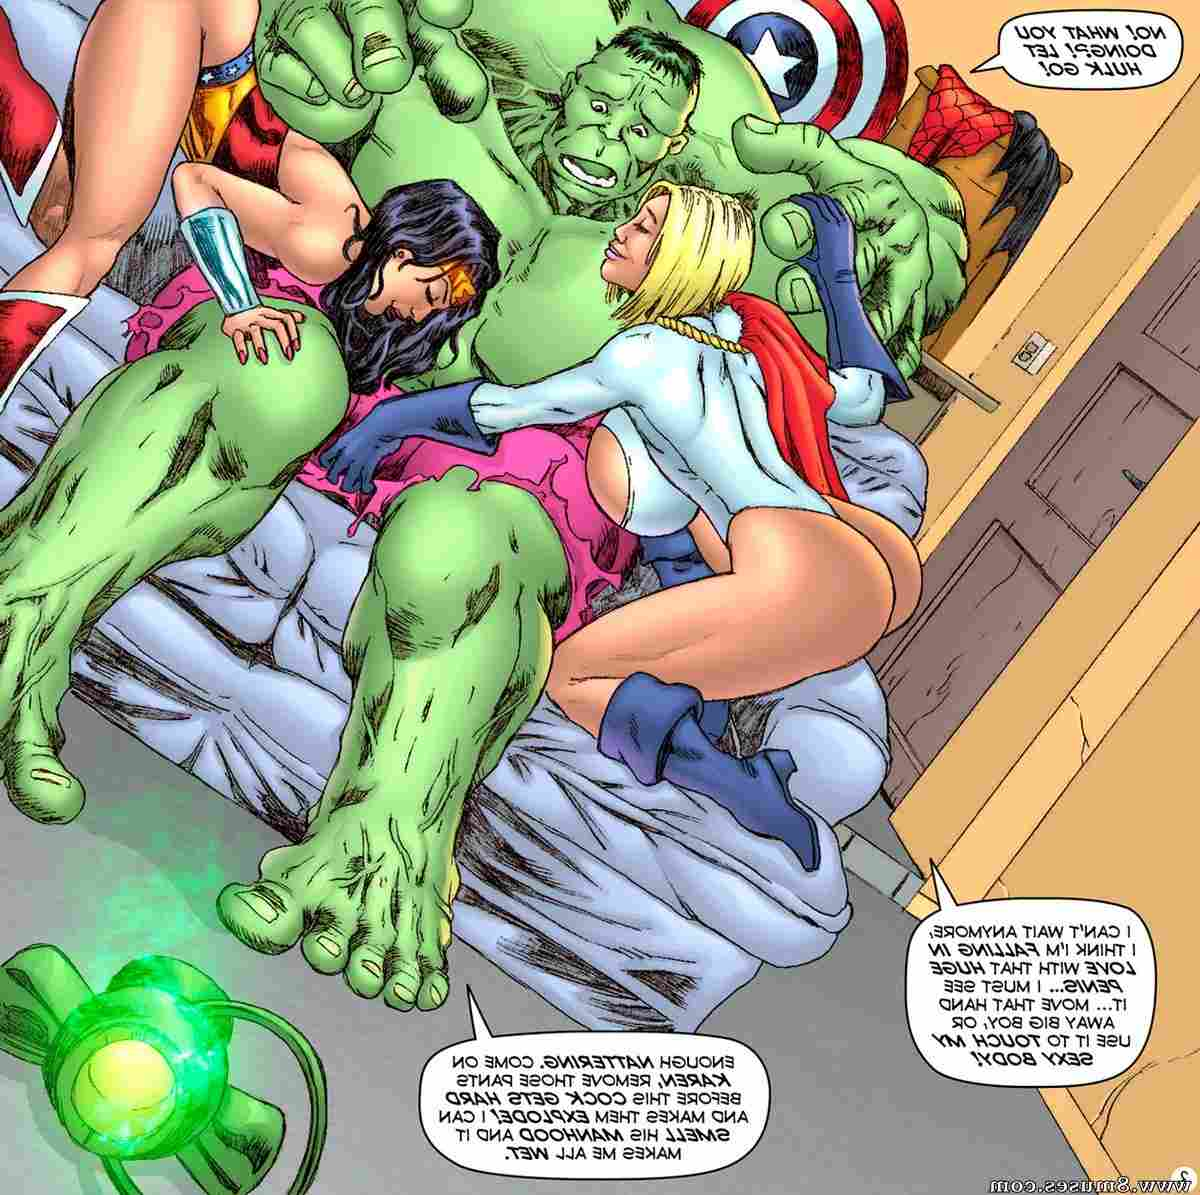 SuperHeroineComixxx/The-Big-One The_Big_One__8muses_-_Sex_and_Porn_Comics_4.jpg